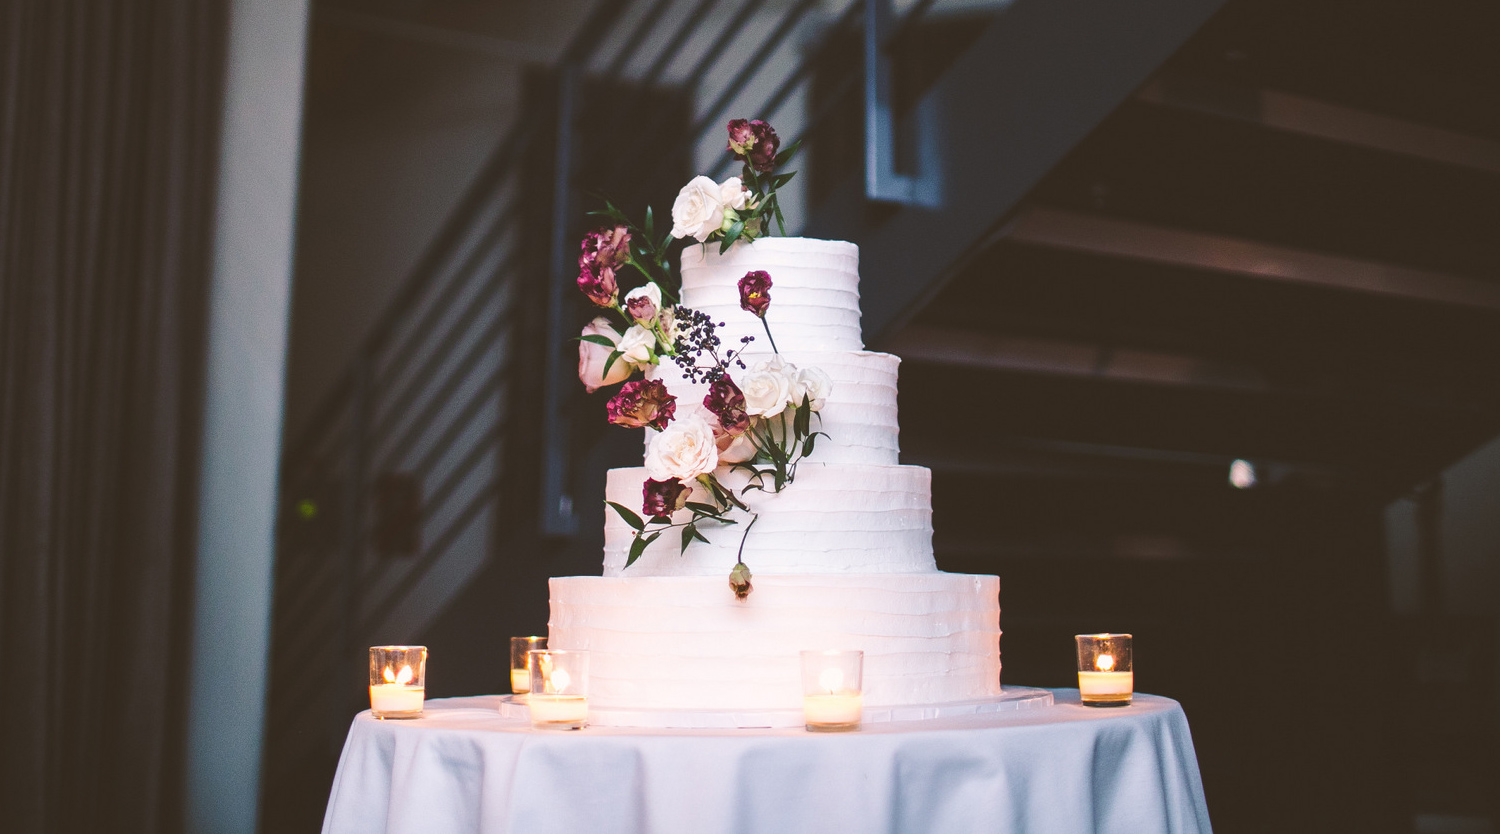 Photo: white frosted wedding cake, flowers and leaves sticking out of the four tiers